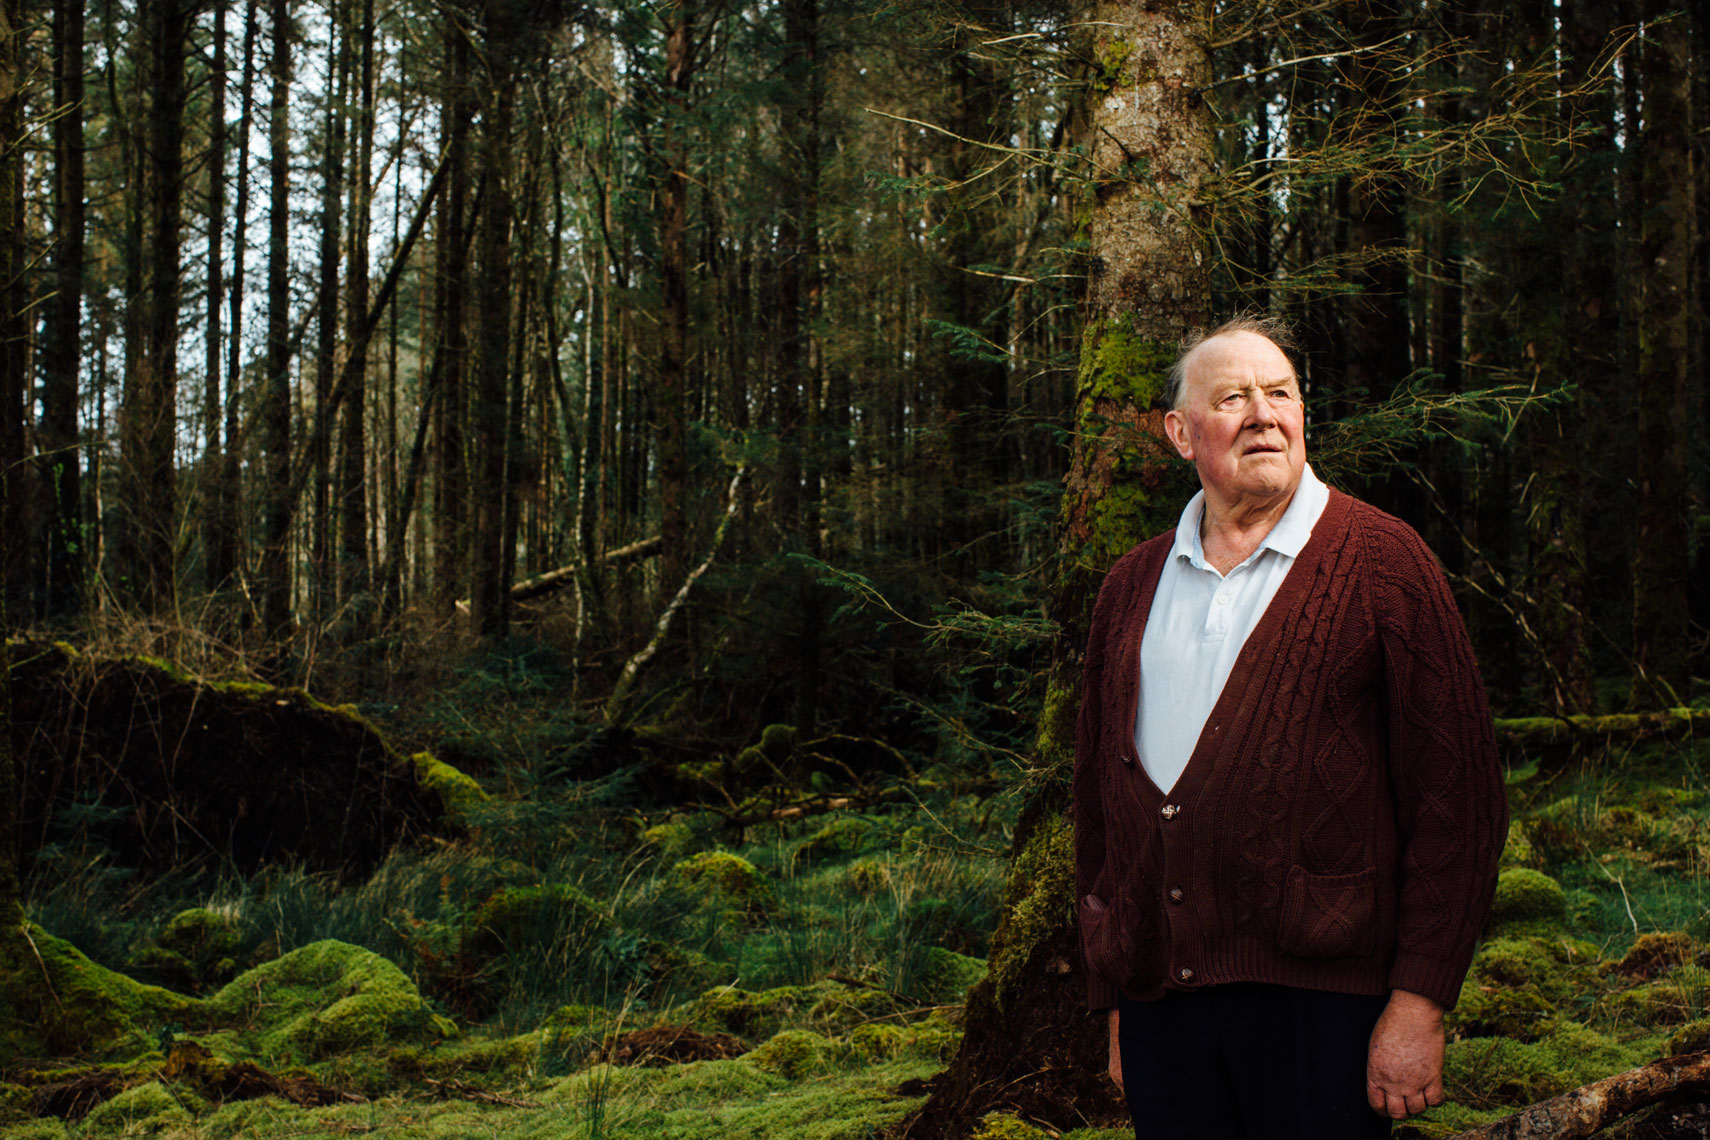 farmer in purple cardigan stands in forest